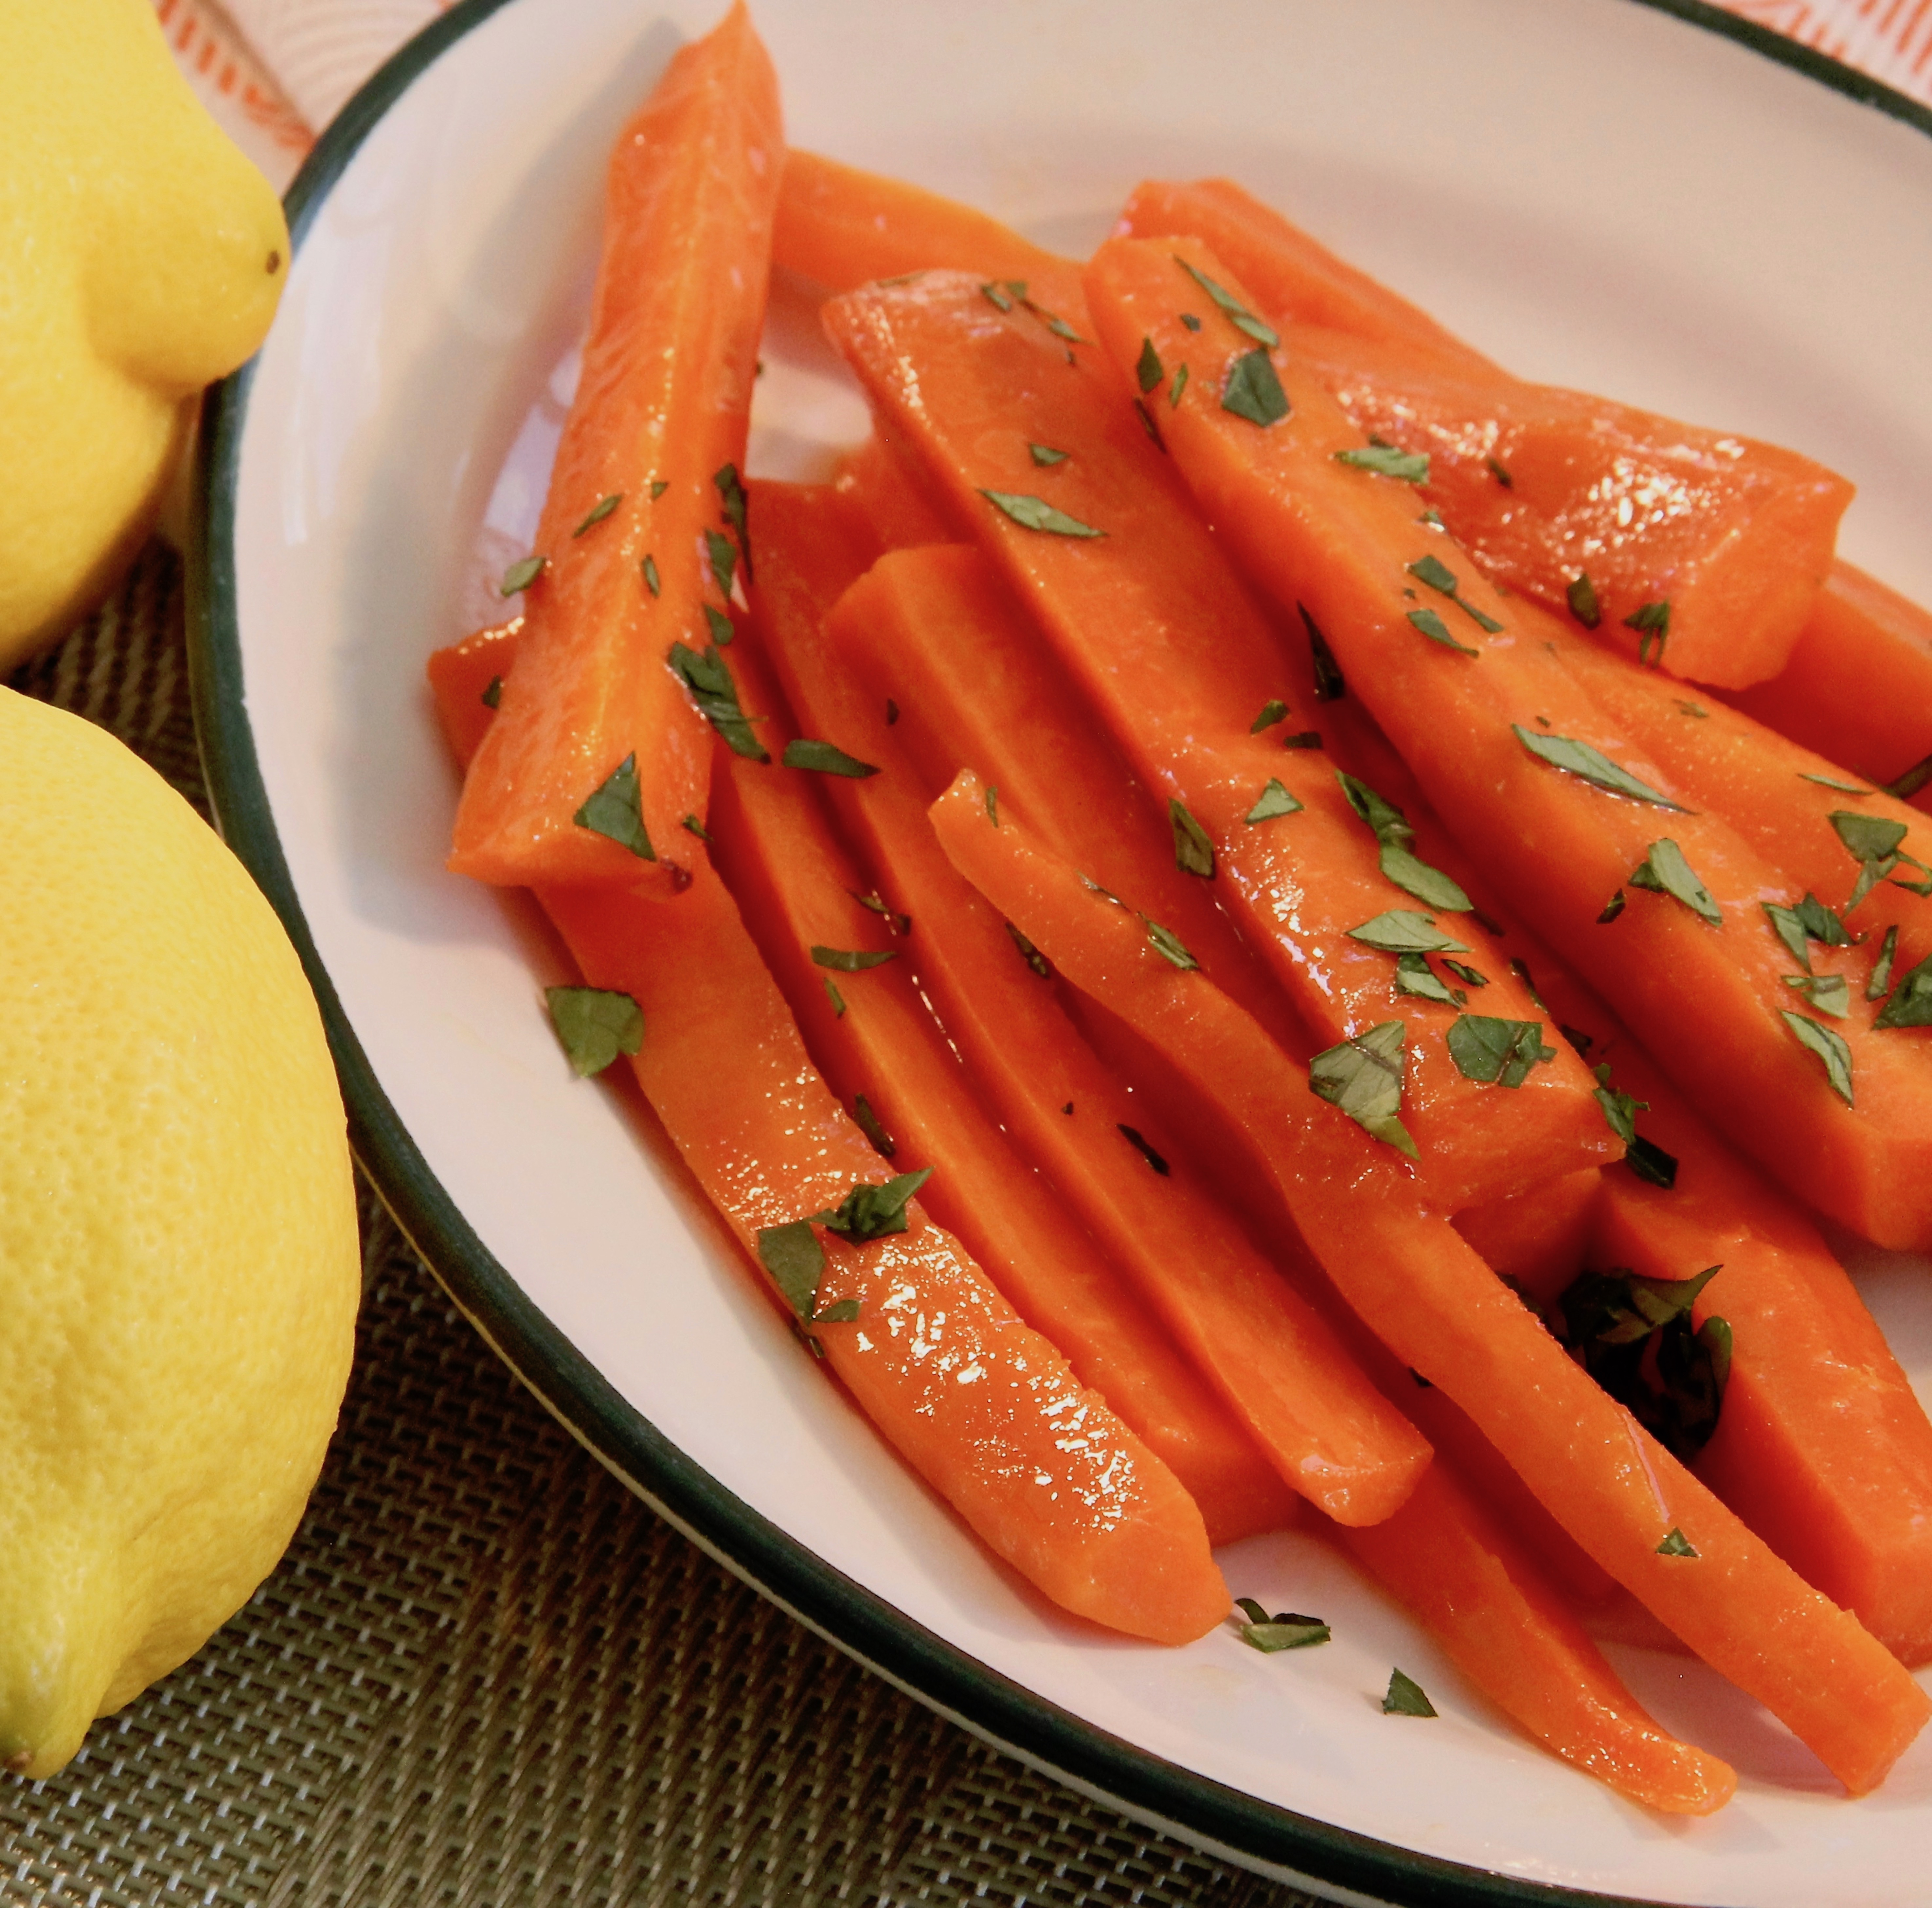 Lemon-Glazed Carrots